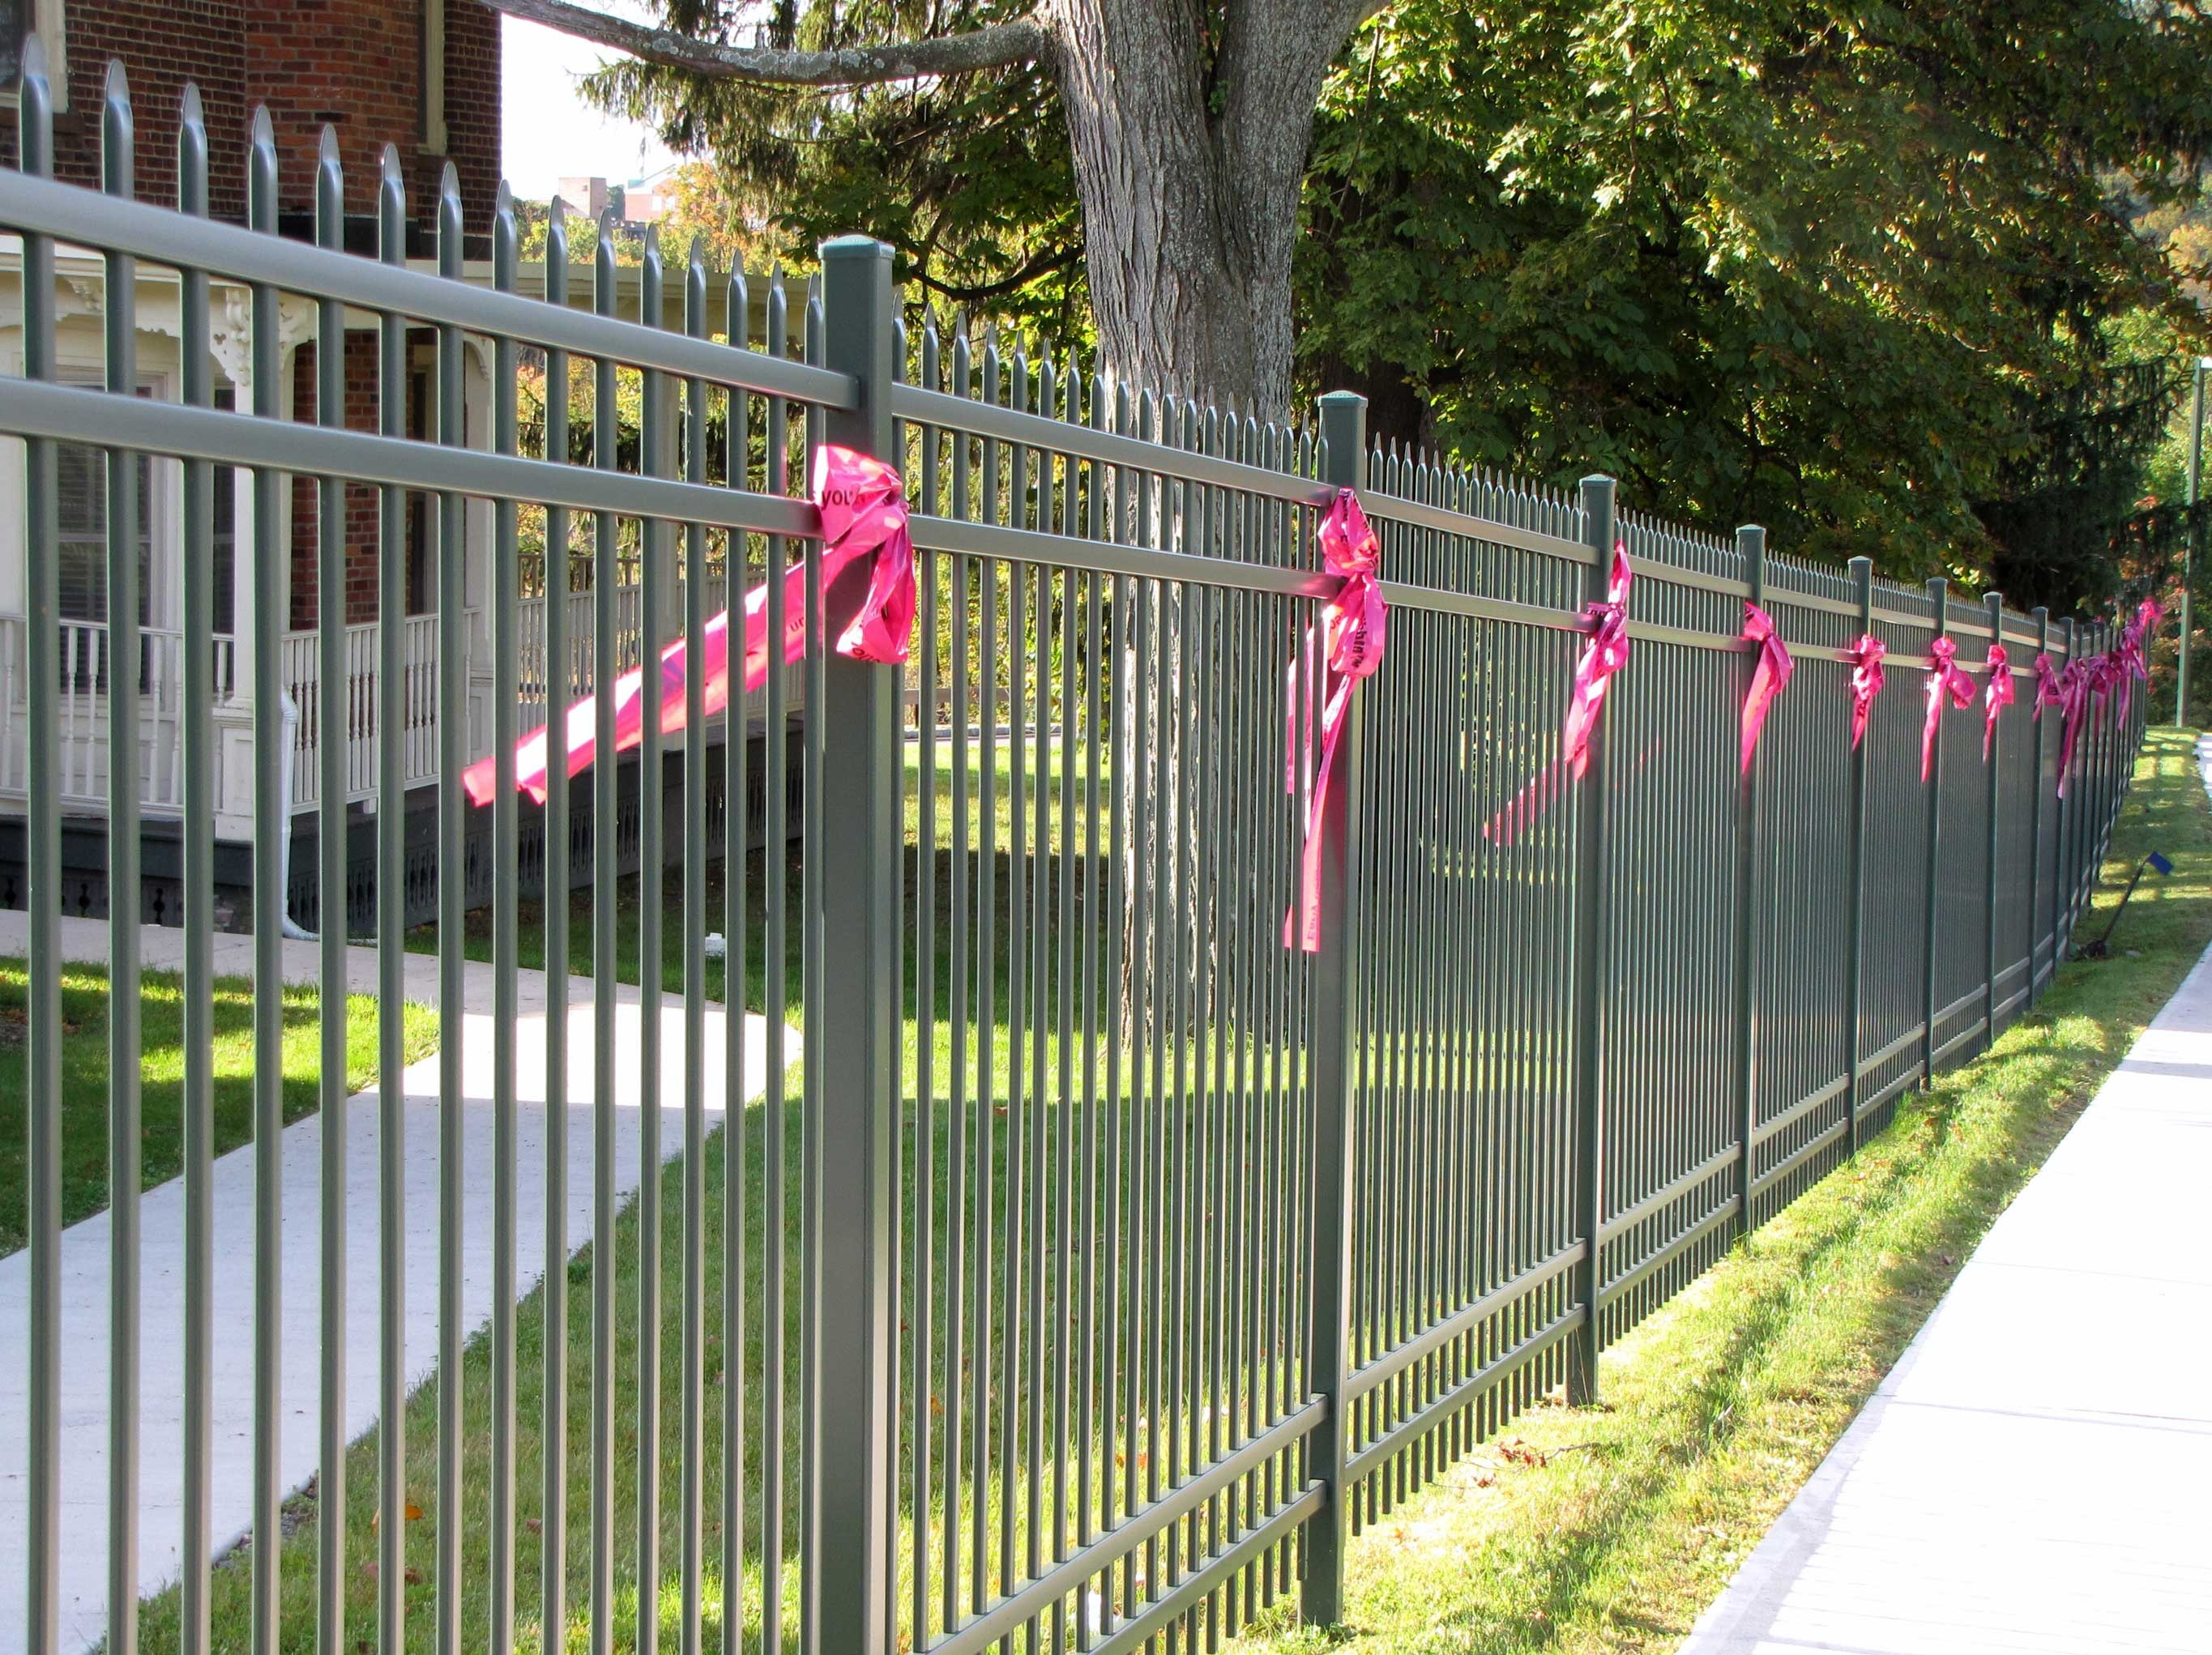 e595cb8d34052909152e_Fence-with-ribbons-reduced.jpg